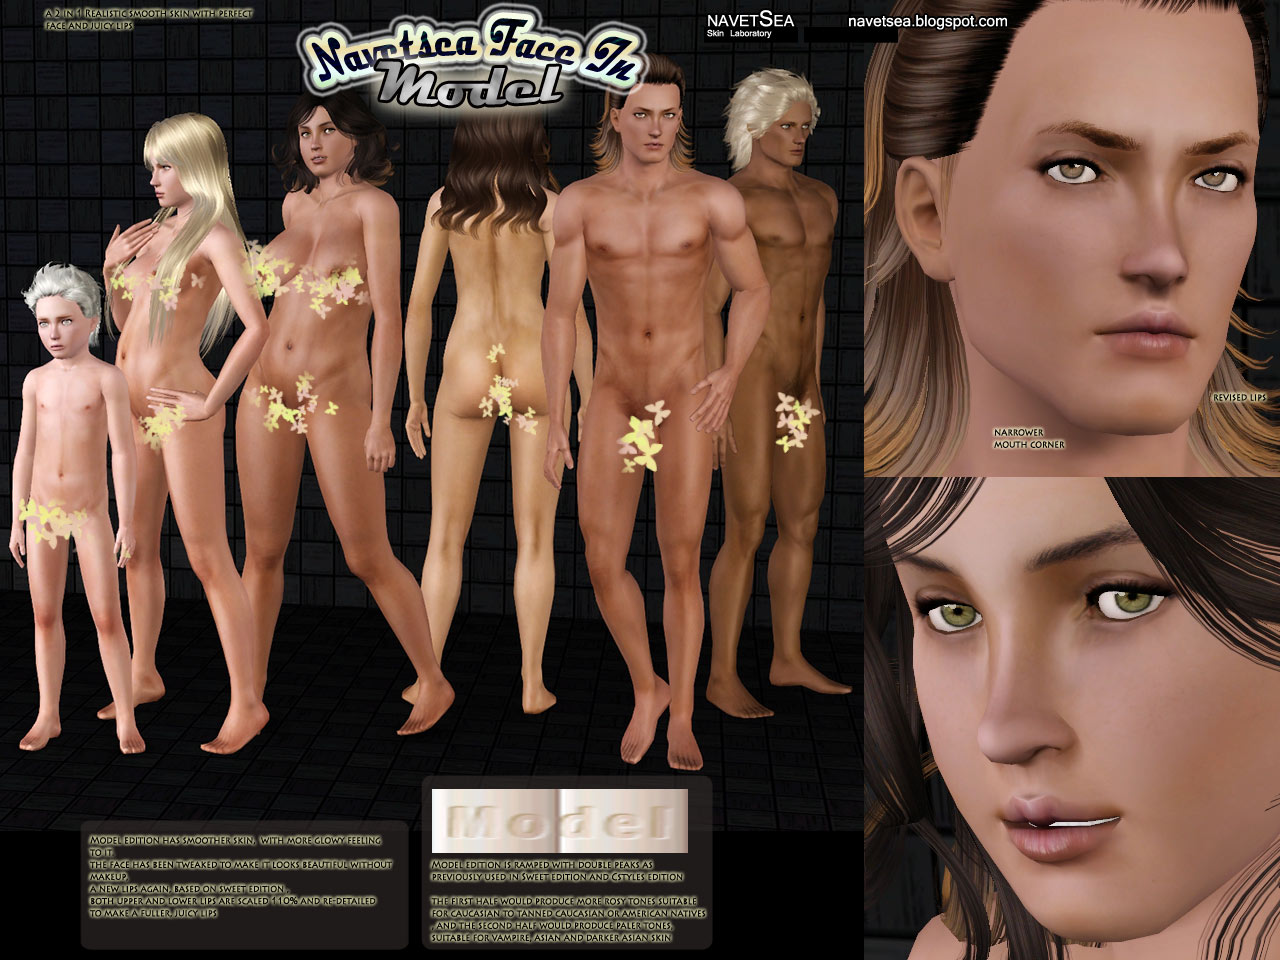 The sims 2 male nude skins exploited pic